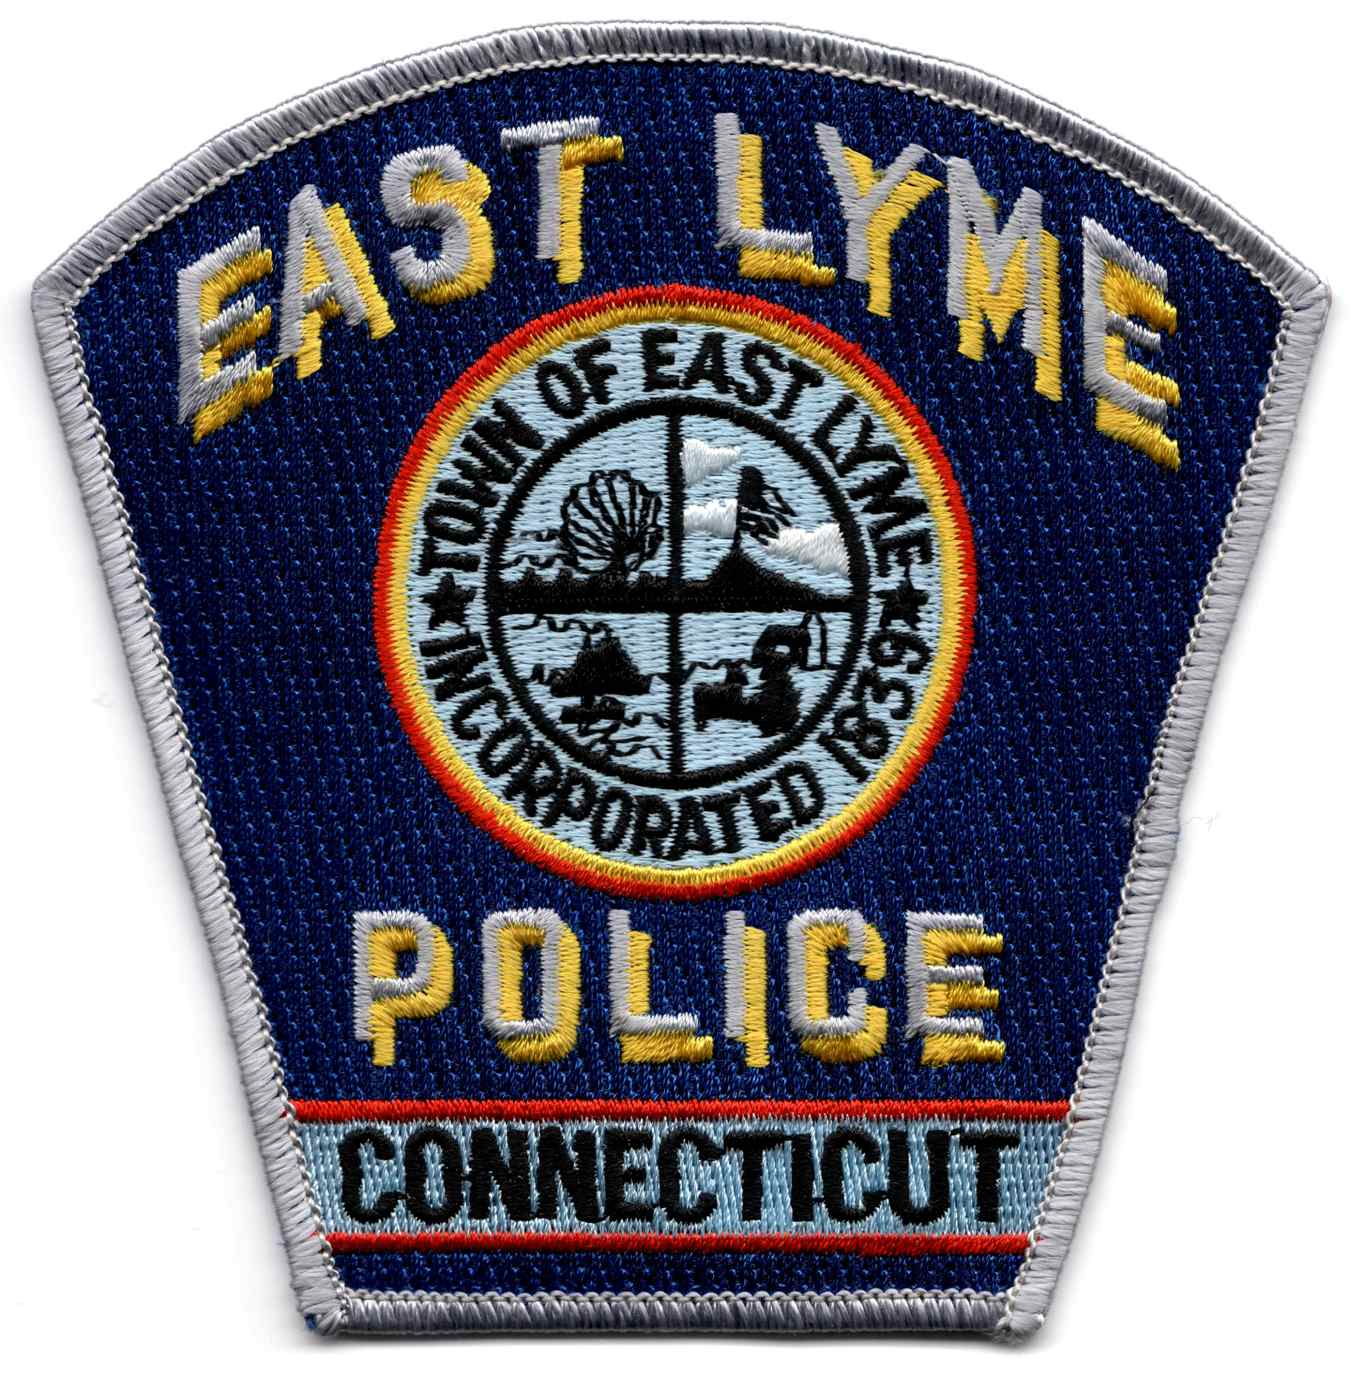 PoliceDept_elpd patch0001 small